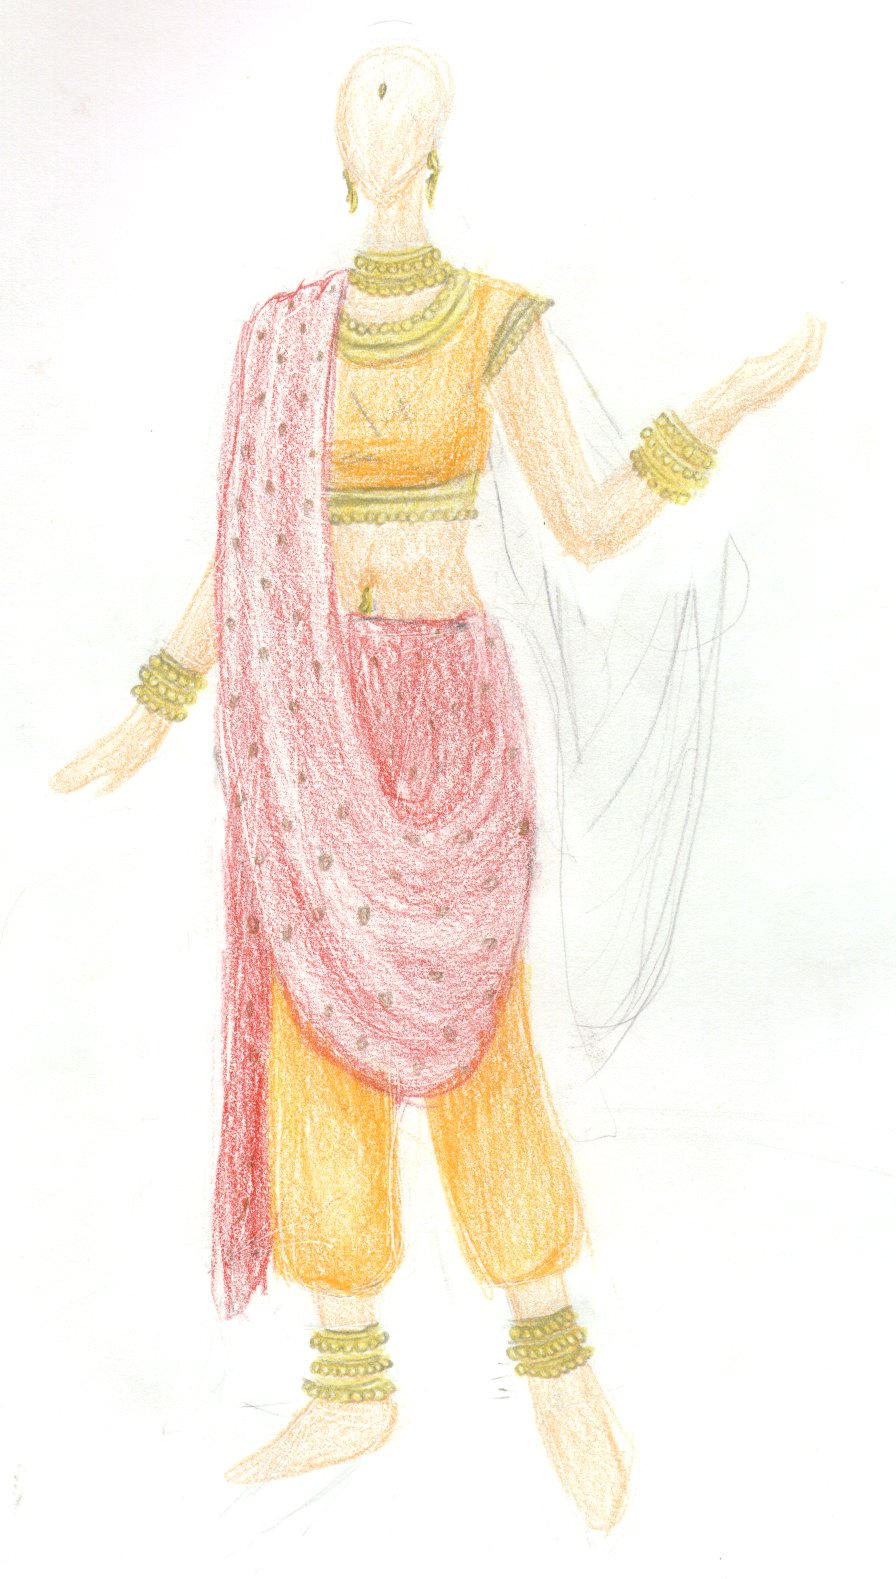 Clothing Design - Indian Dress by sharpiechick on DeviantArt